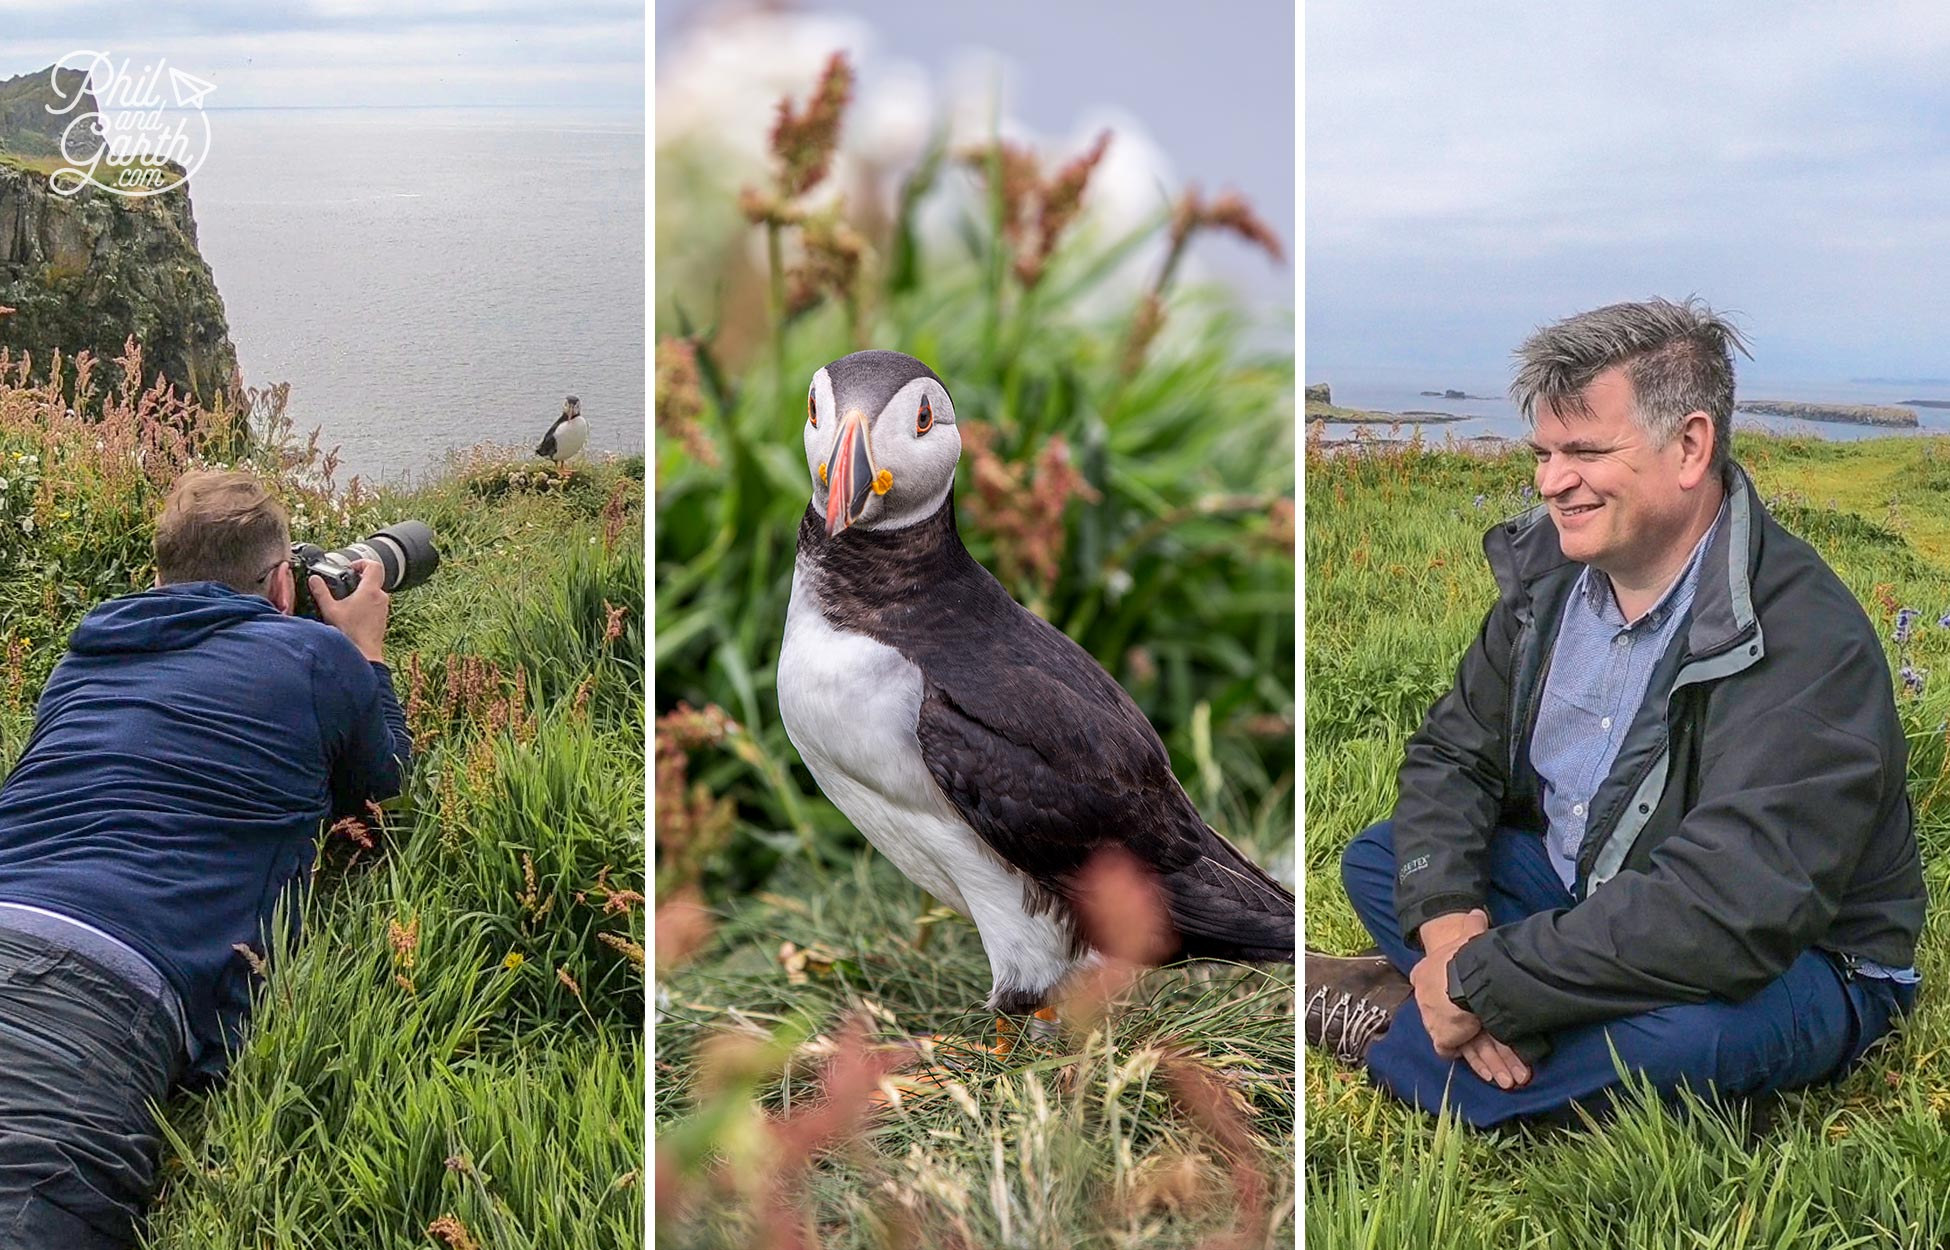 Garth photographing and Phil very happy watching the puffins